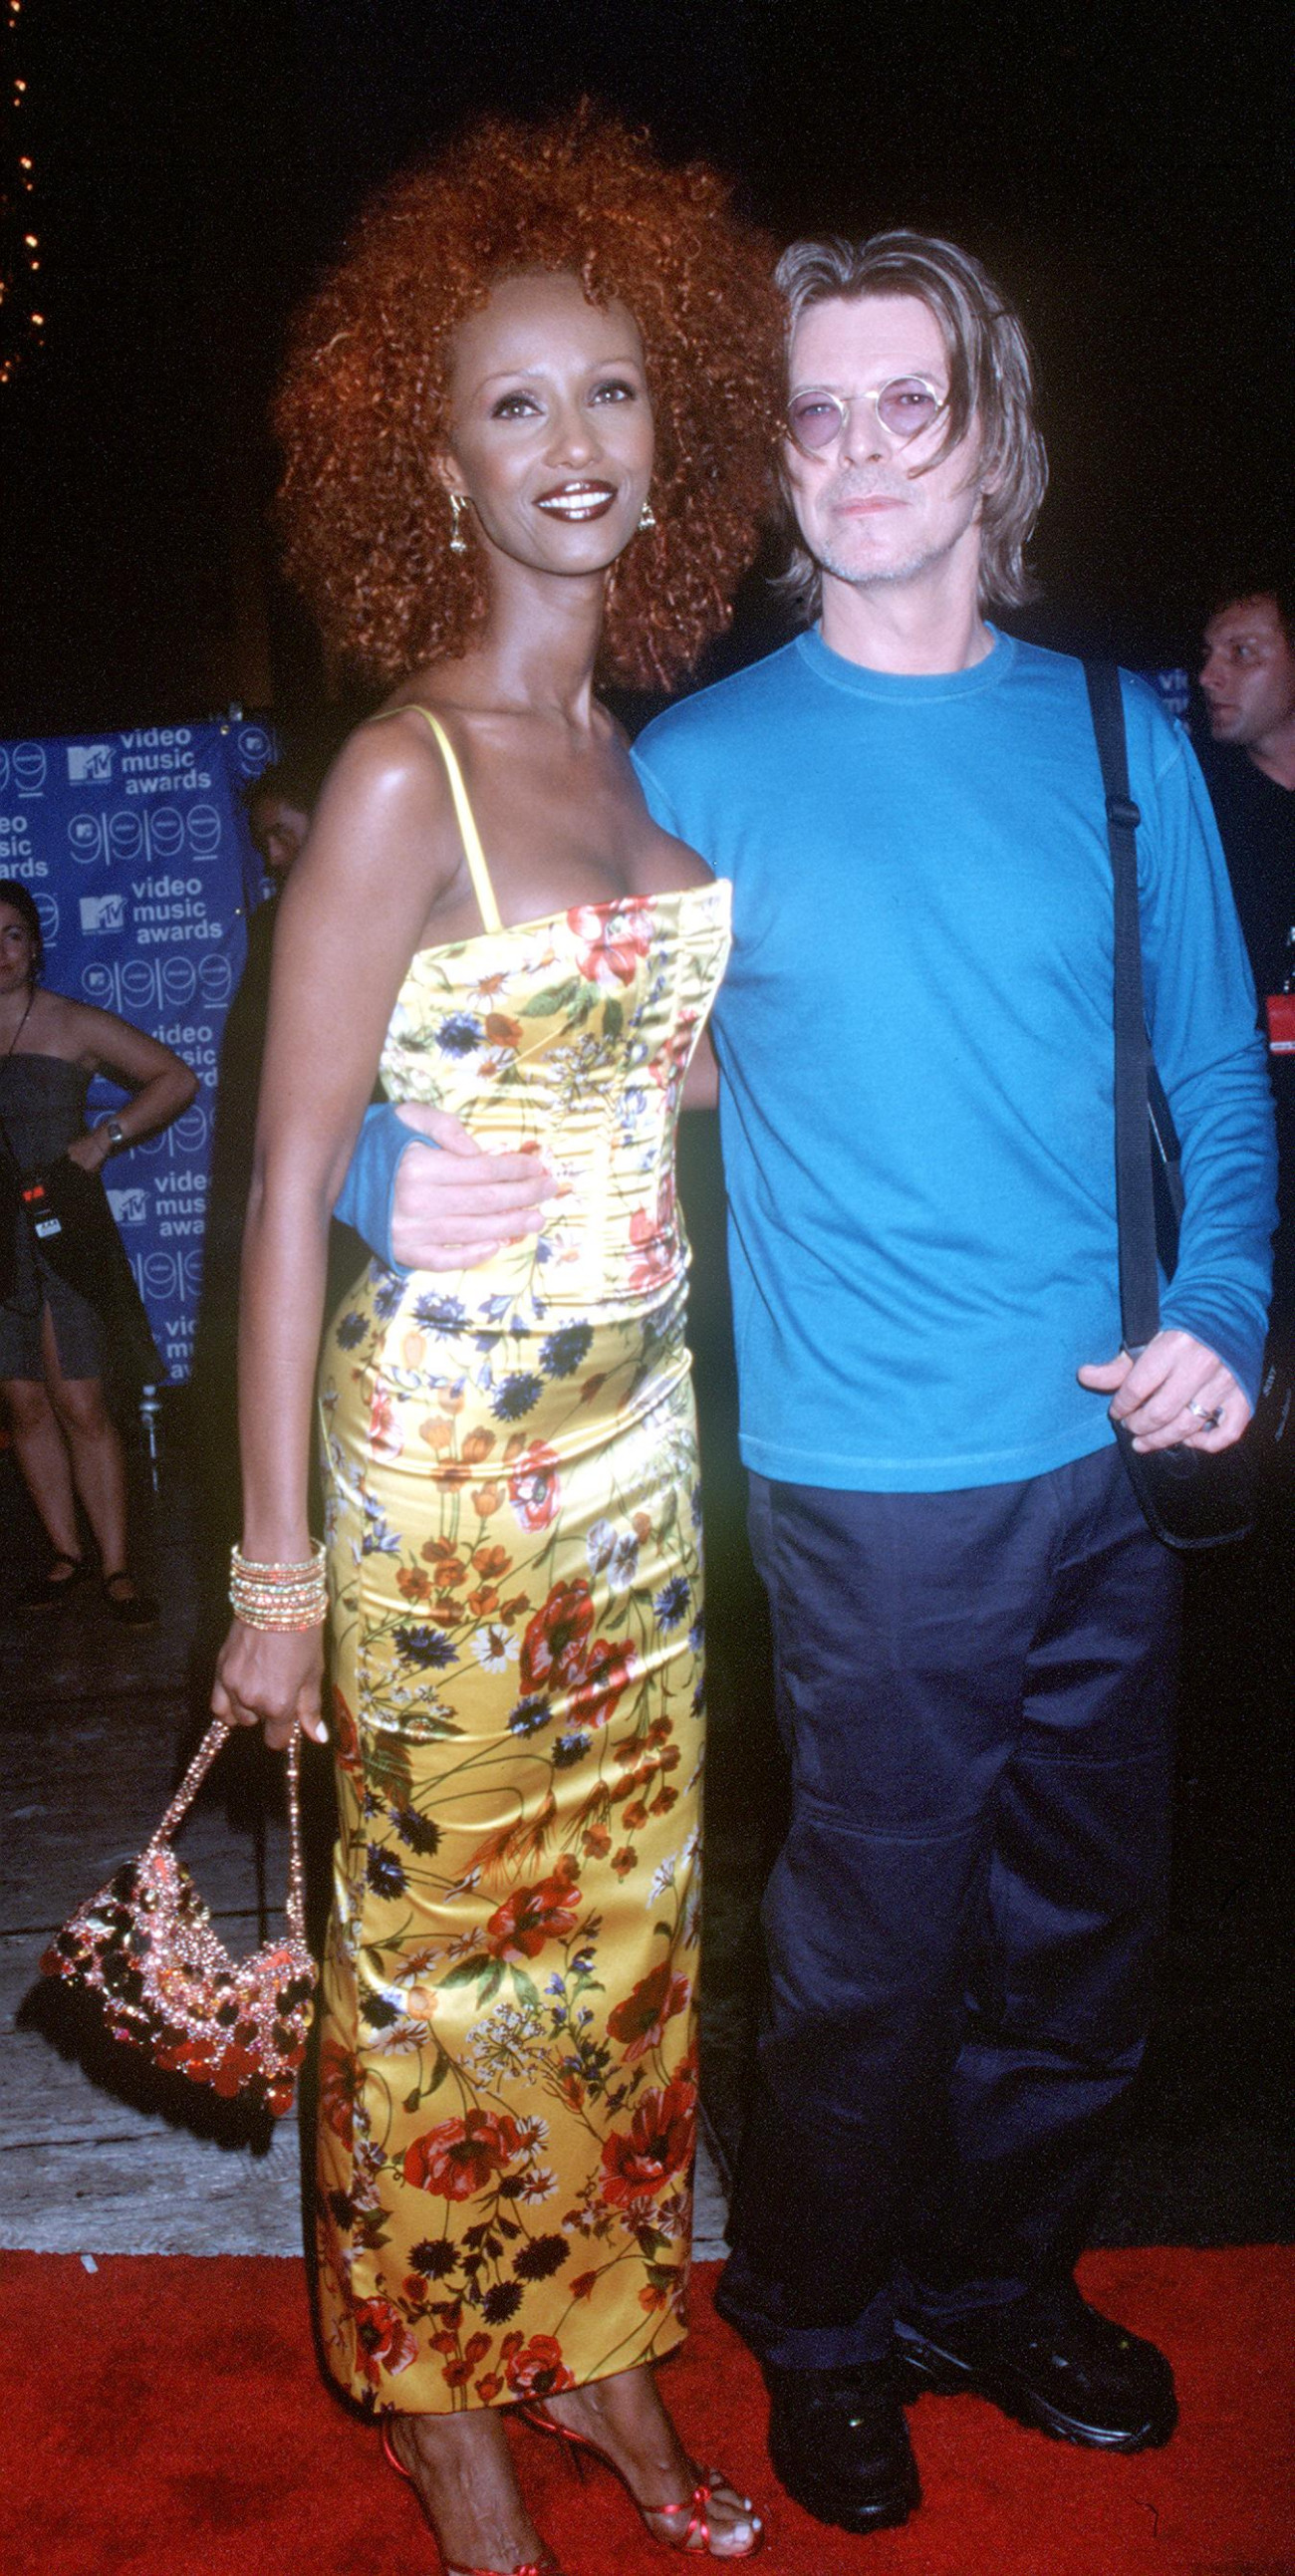 9/9/99 New York, NY. David Bowie with his wife, Iman at the MTV Video Music Awards. Photo by Brenda Chase/Online USA, Inc.